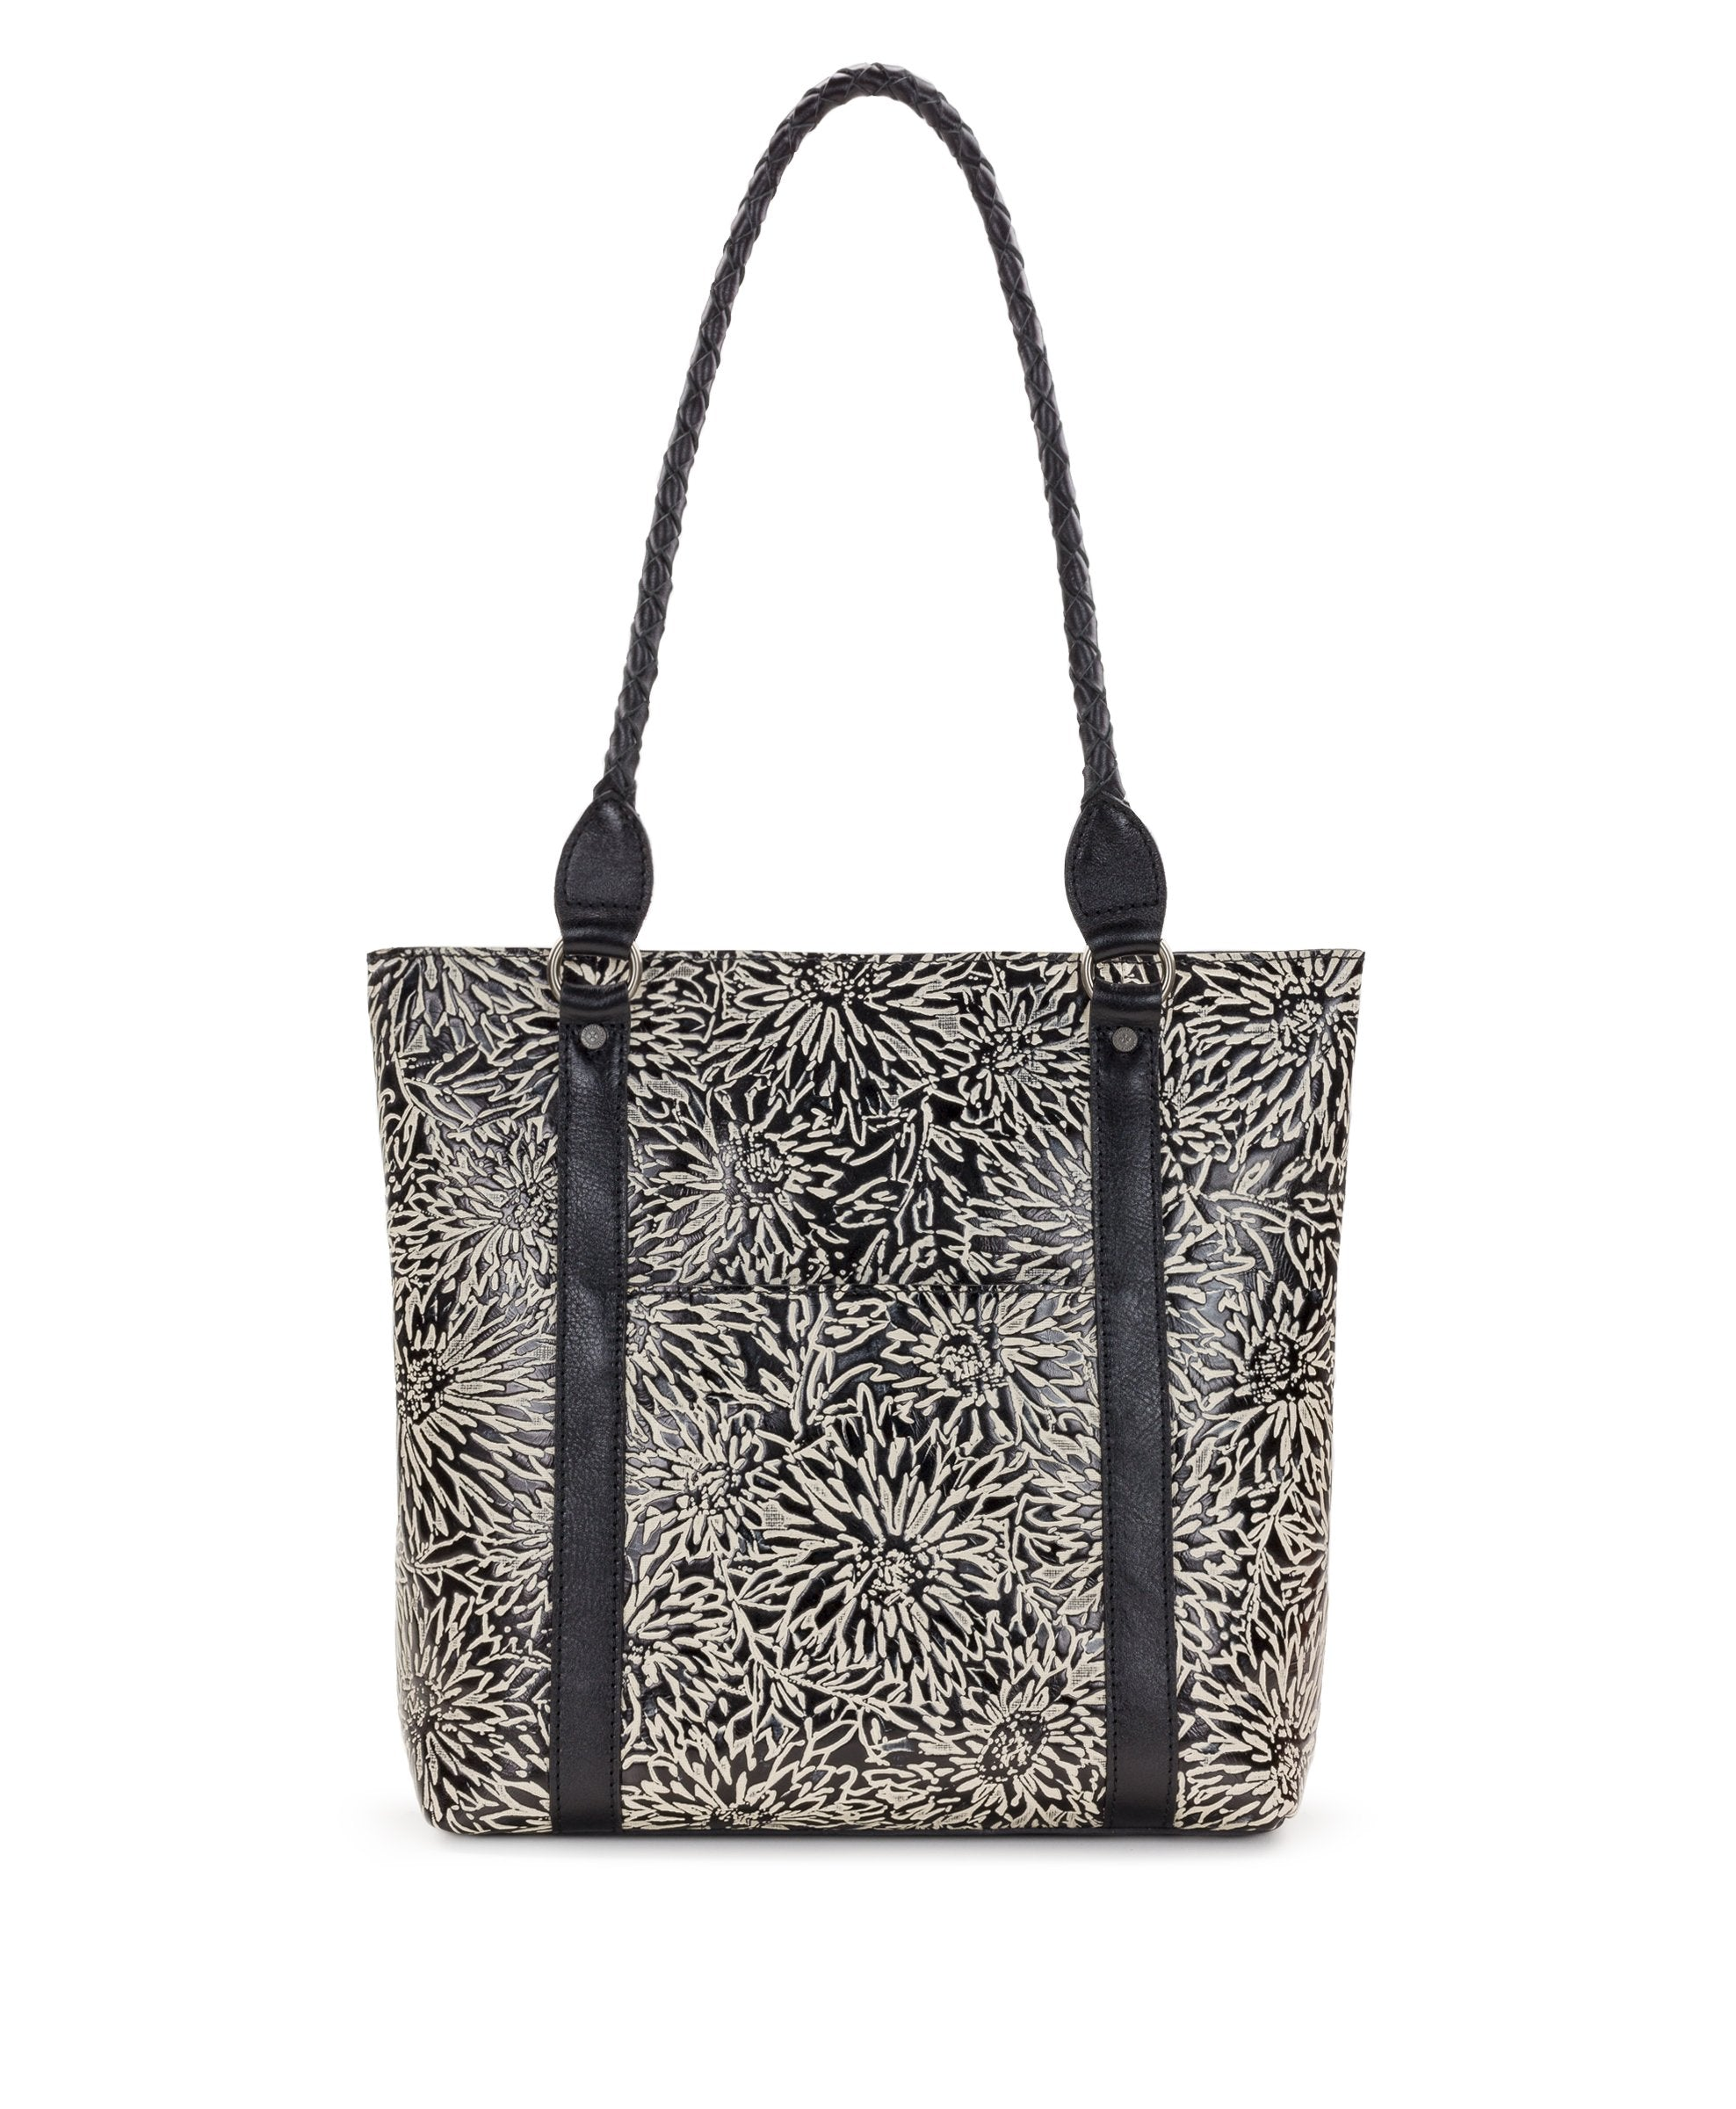 Rena Tote - Sunflower Tooling 2